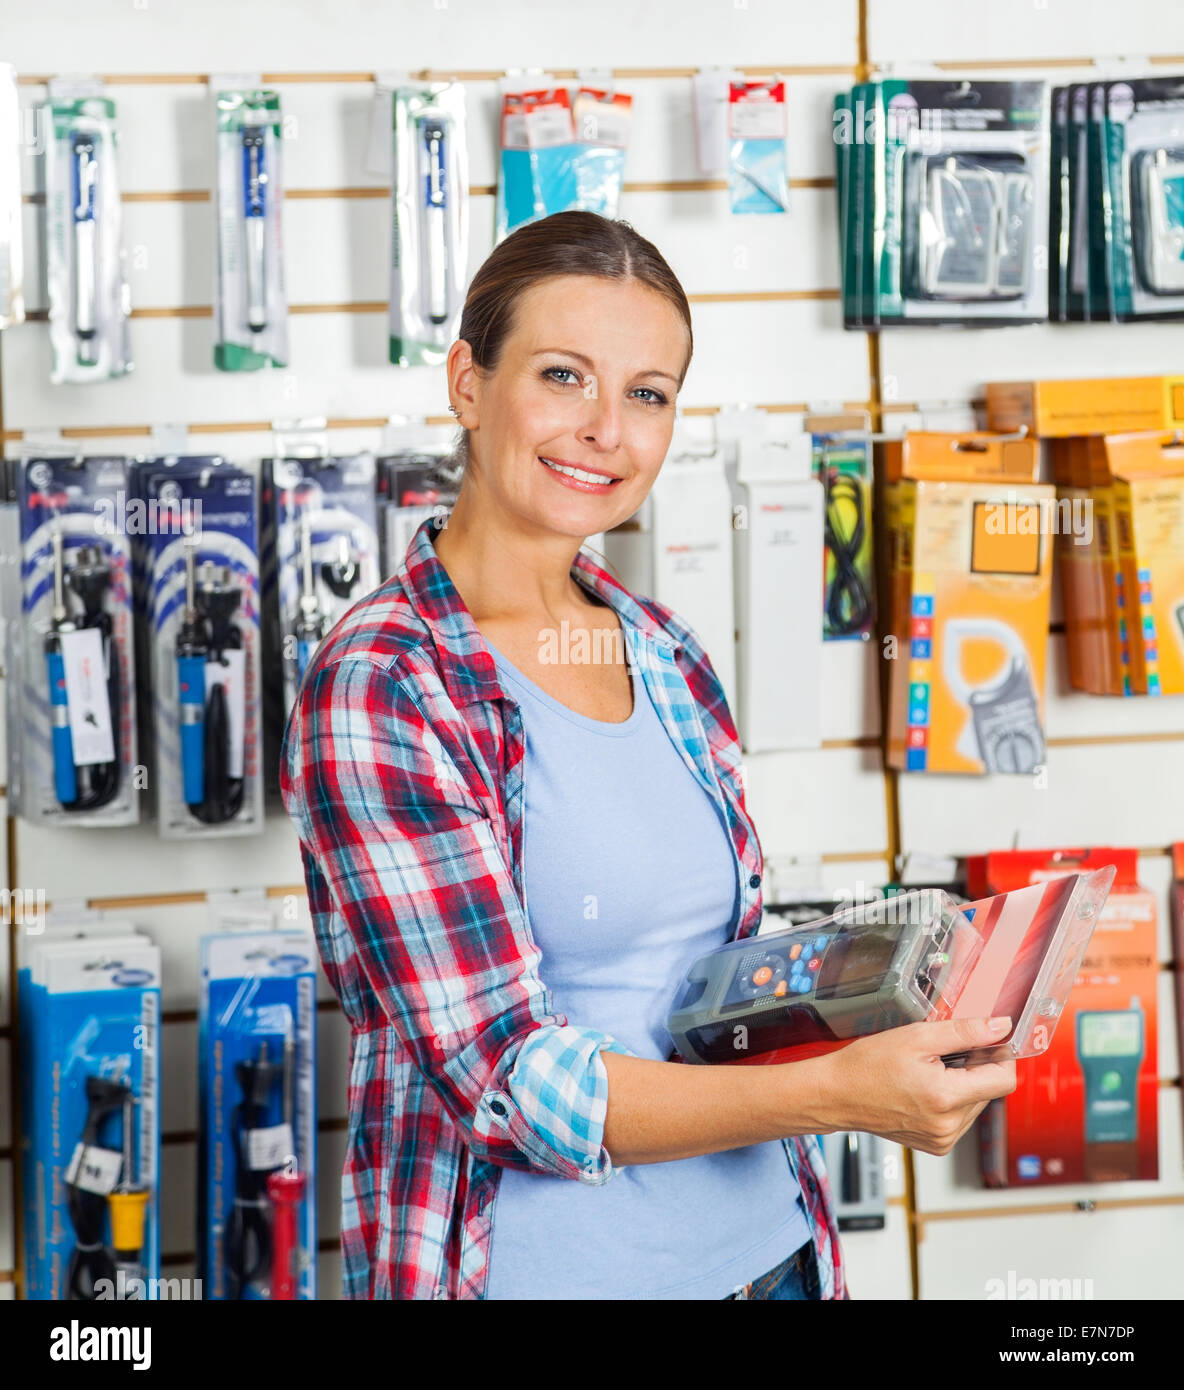 Customer Holding Packed Product In Hardware Store - Stock Image